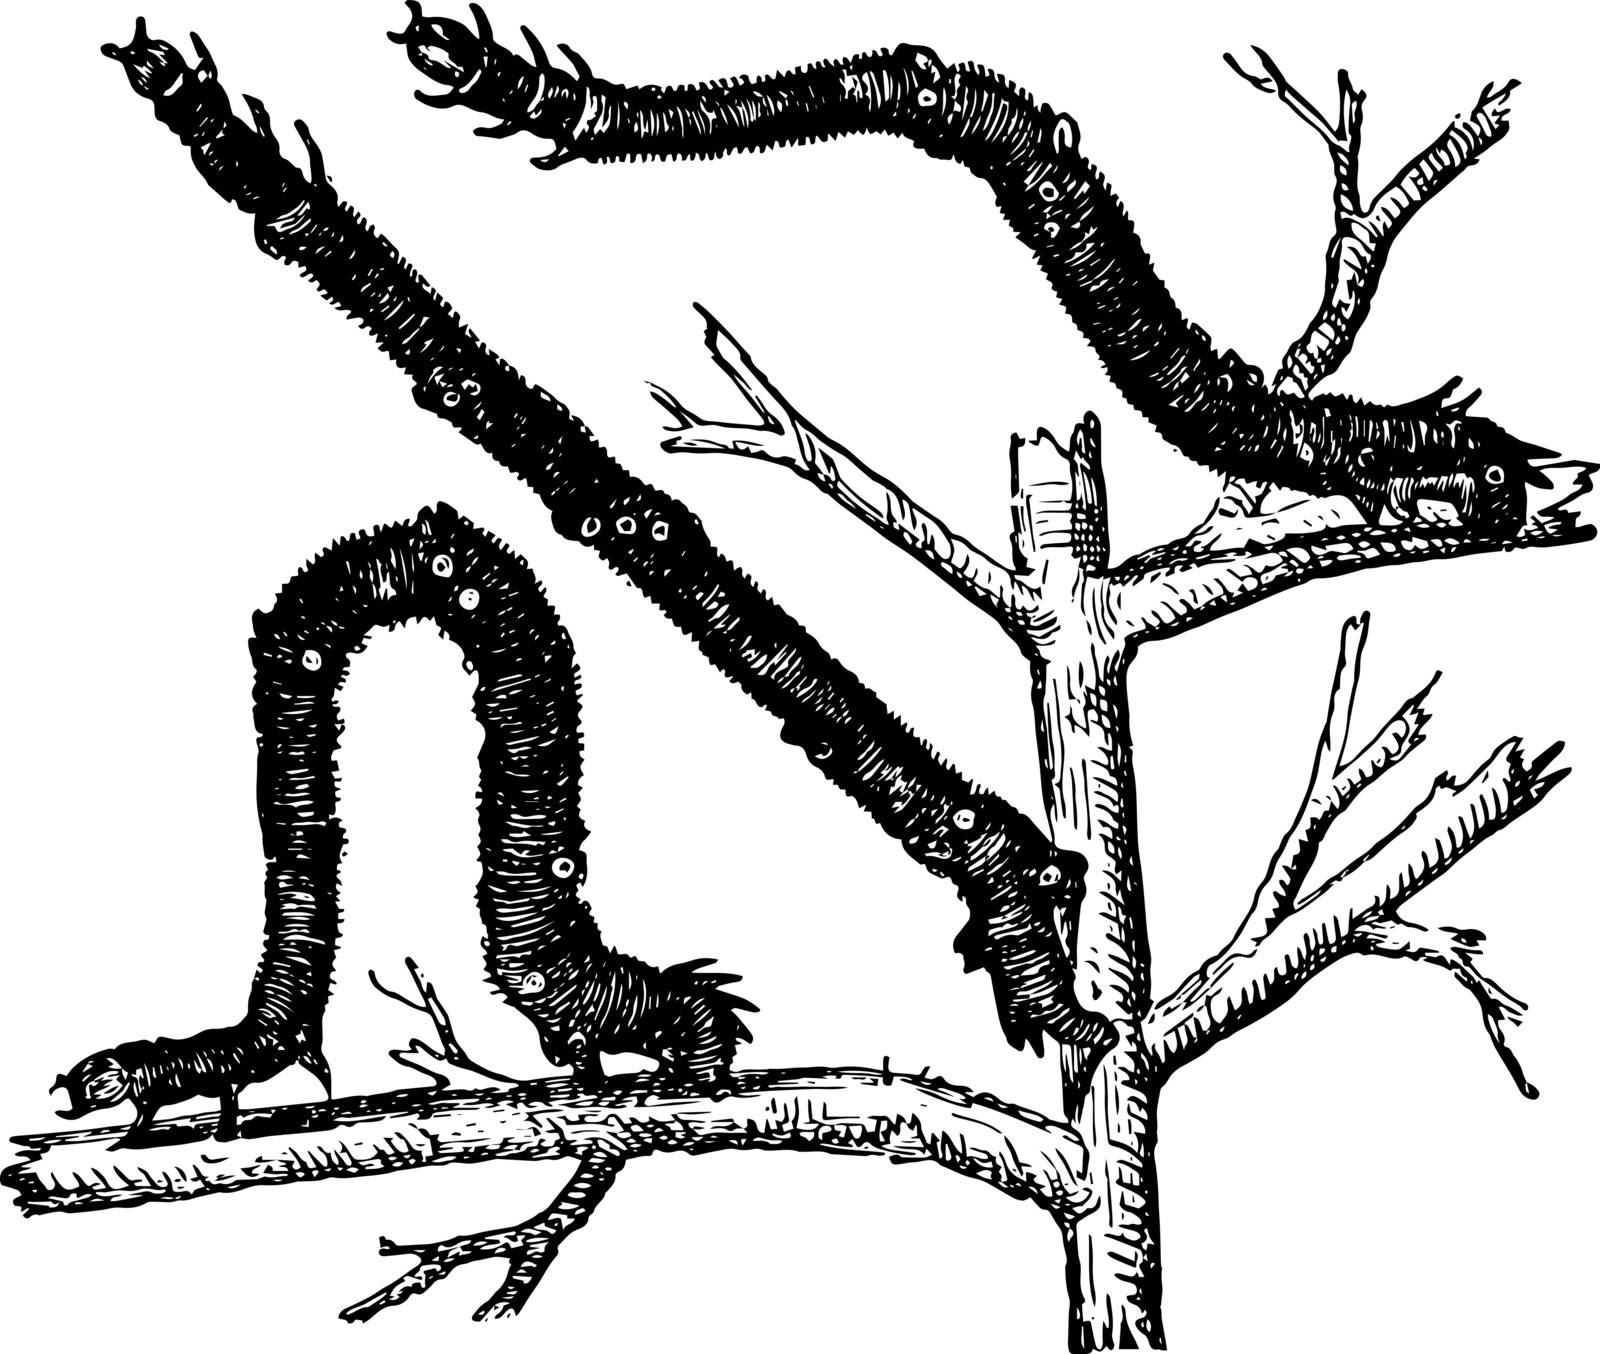 Caterpillar of the Canary Shouldered Thorn they embrace the stem of the leaf or twig with their hinder or intermediate legs vintage line drawing or engraving illustration.